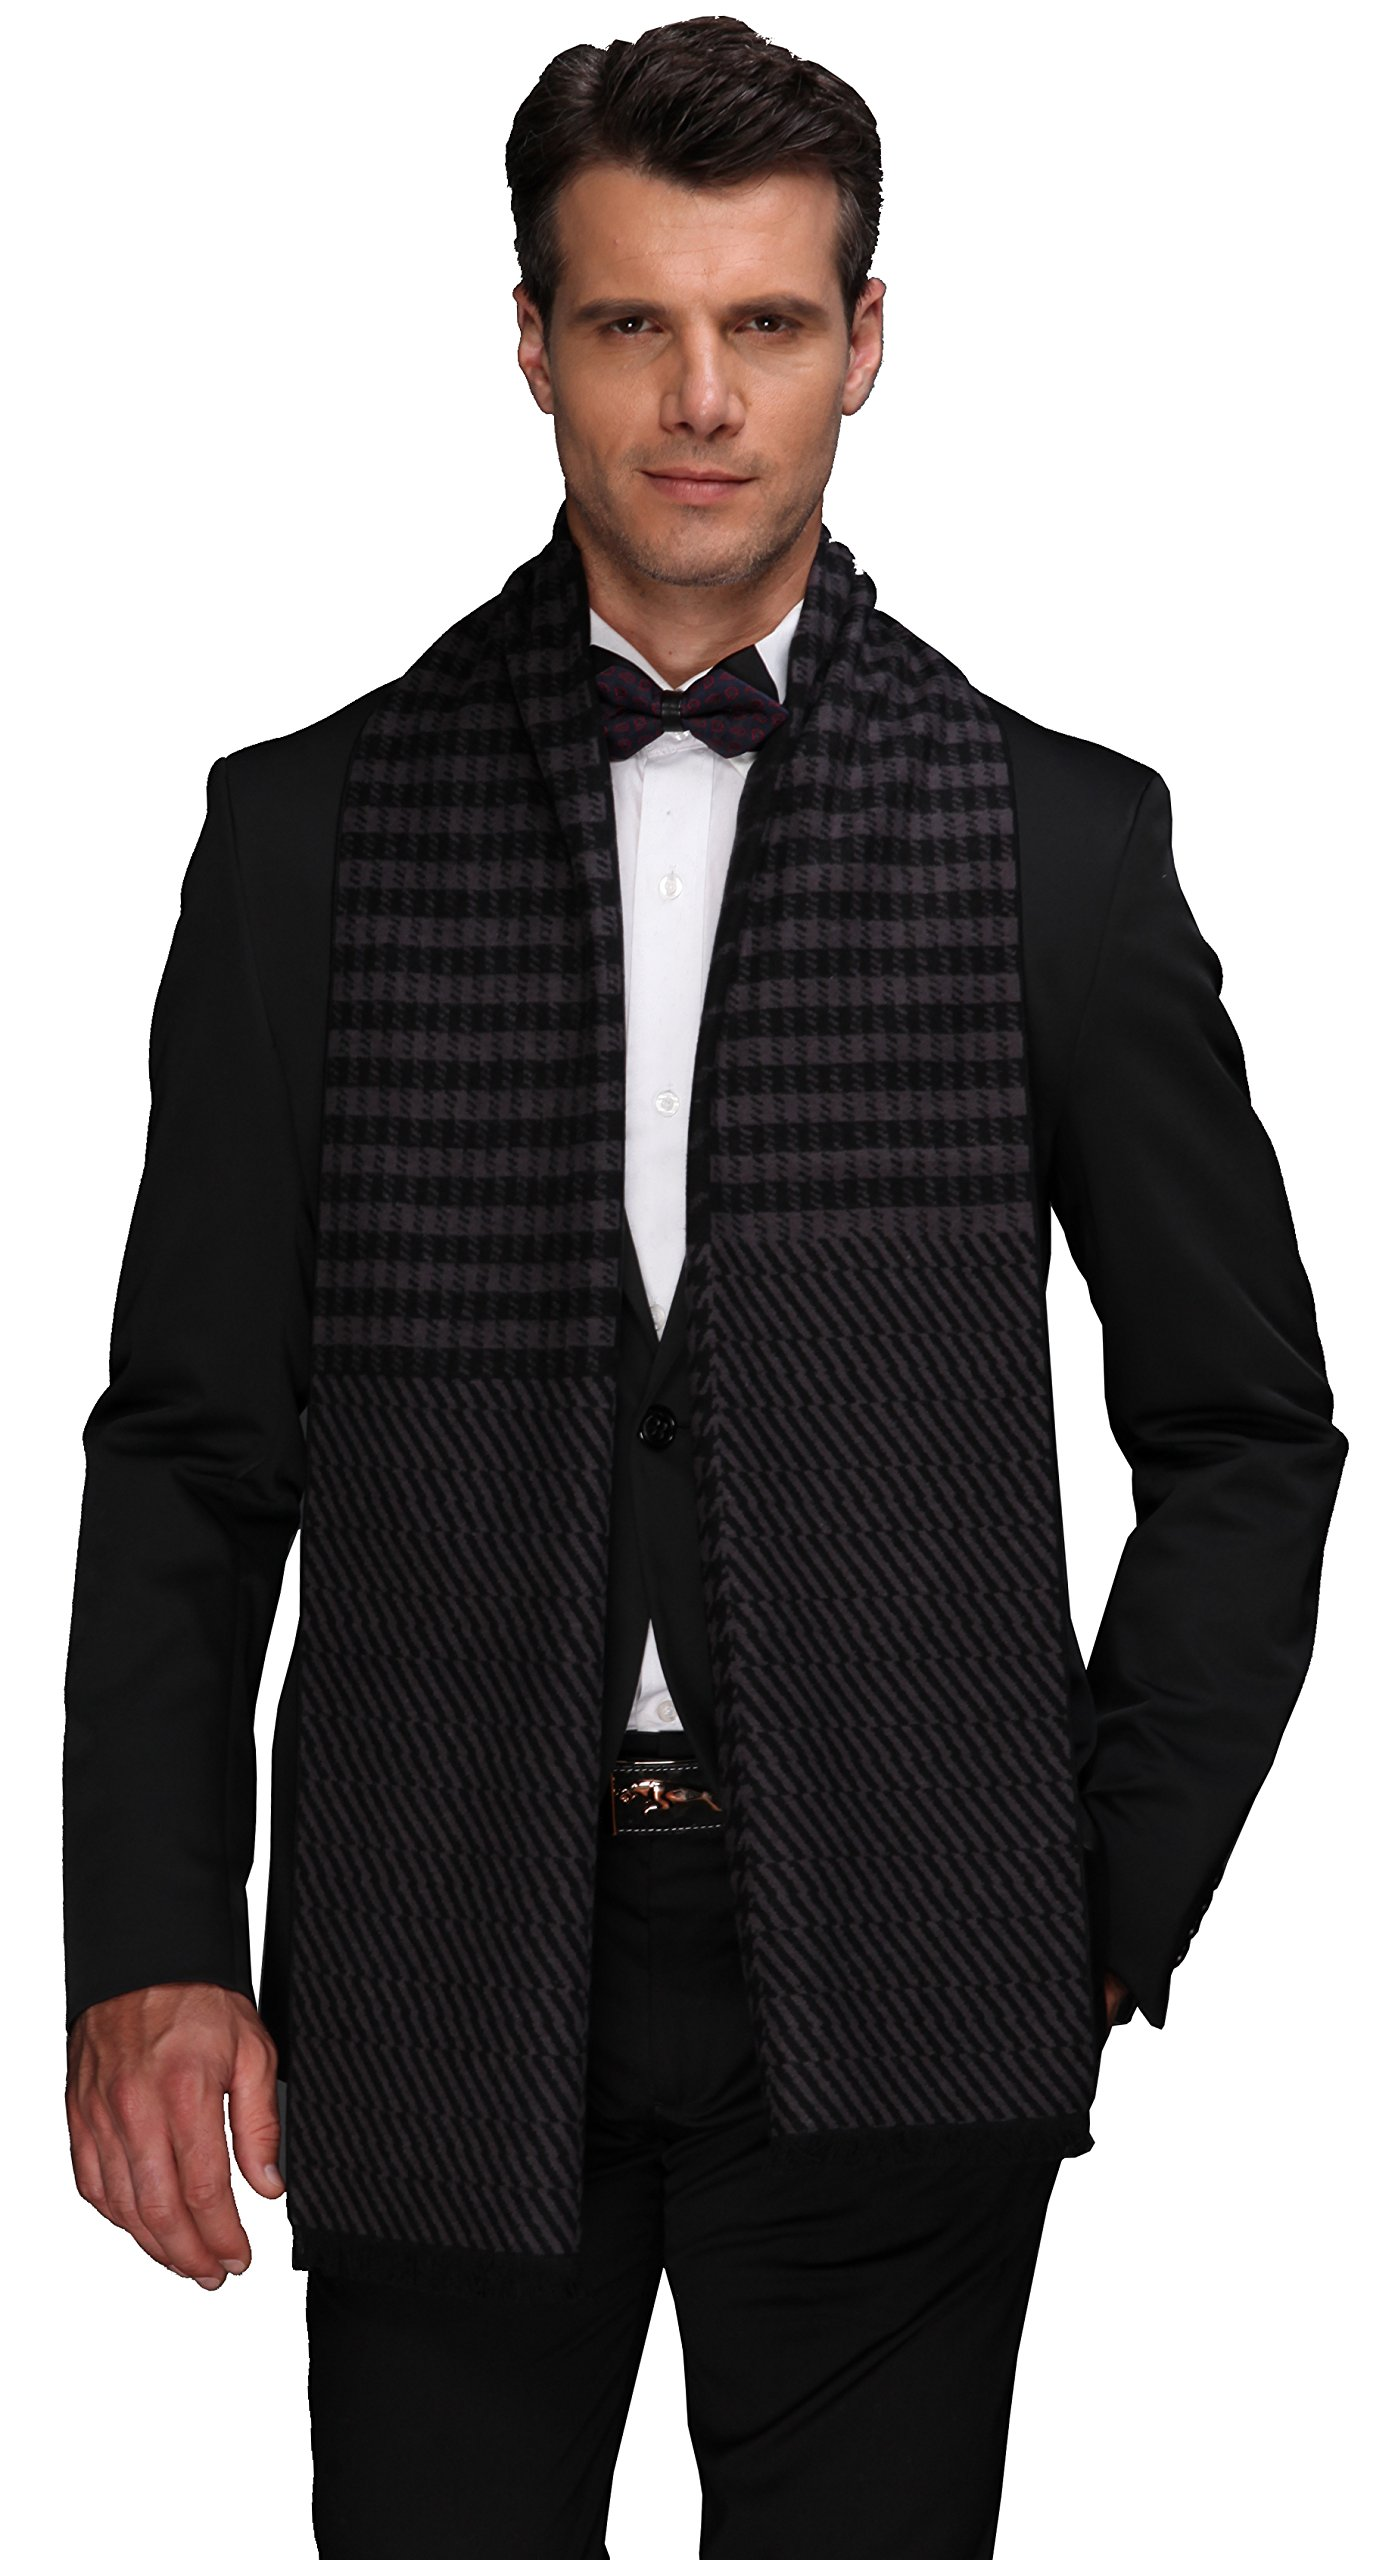 Ellettee Collections, 11'' x 71'' Mens 100% Brushed Silk Scarf, Luxury Fashion Perfect Thanksgiving Gift Neck Wrap Winter Accessory (HeatherGray Houndstooth)